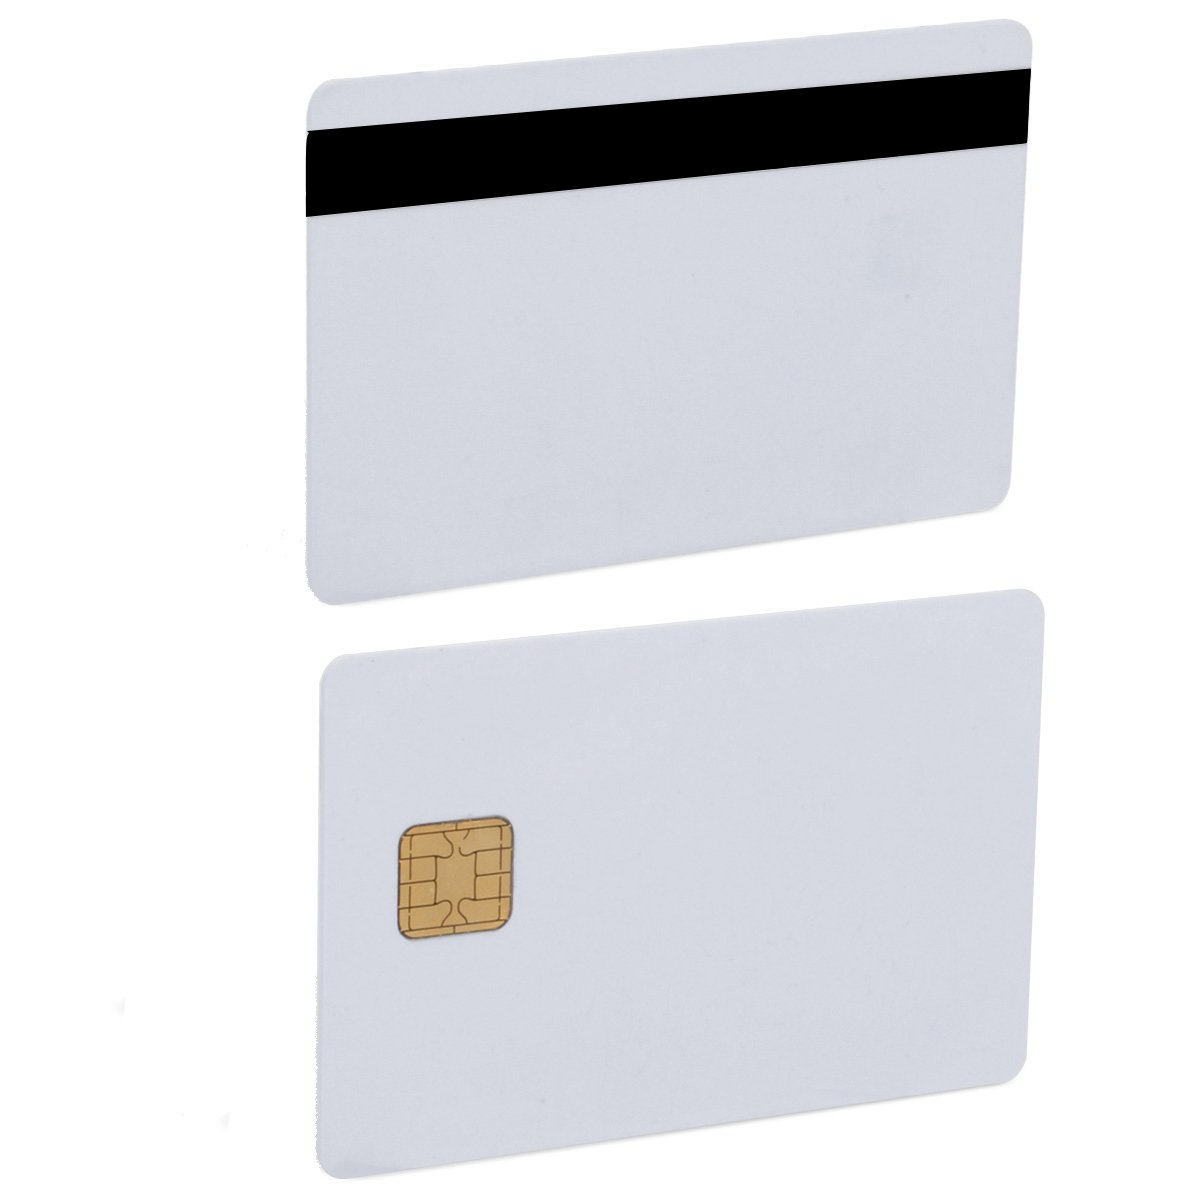 JAVA Chip Smart Card JCOP 40K J2A040 Java Card with 3 track 12.7 mm HICO/LOCO Magnetic Stripe Petsking